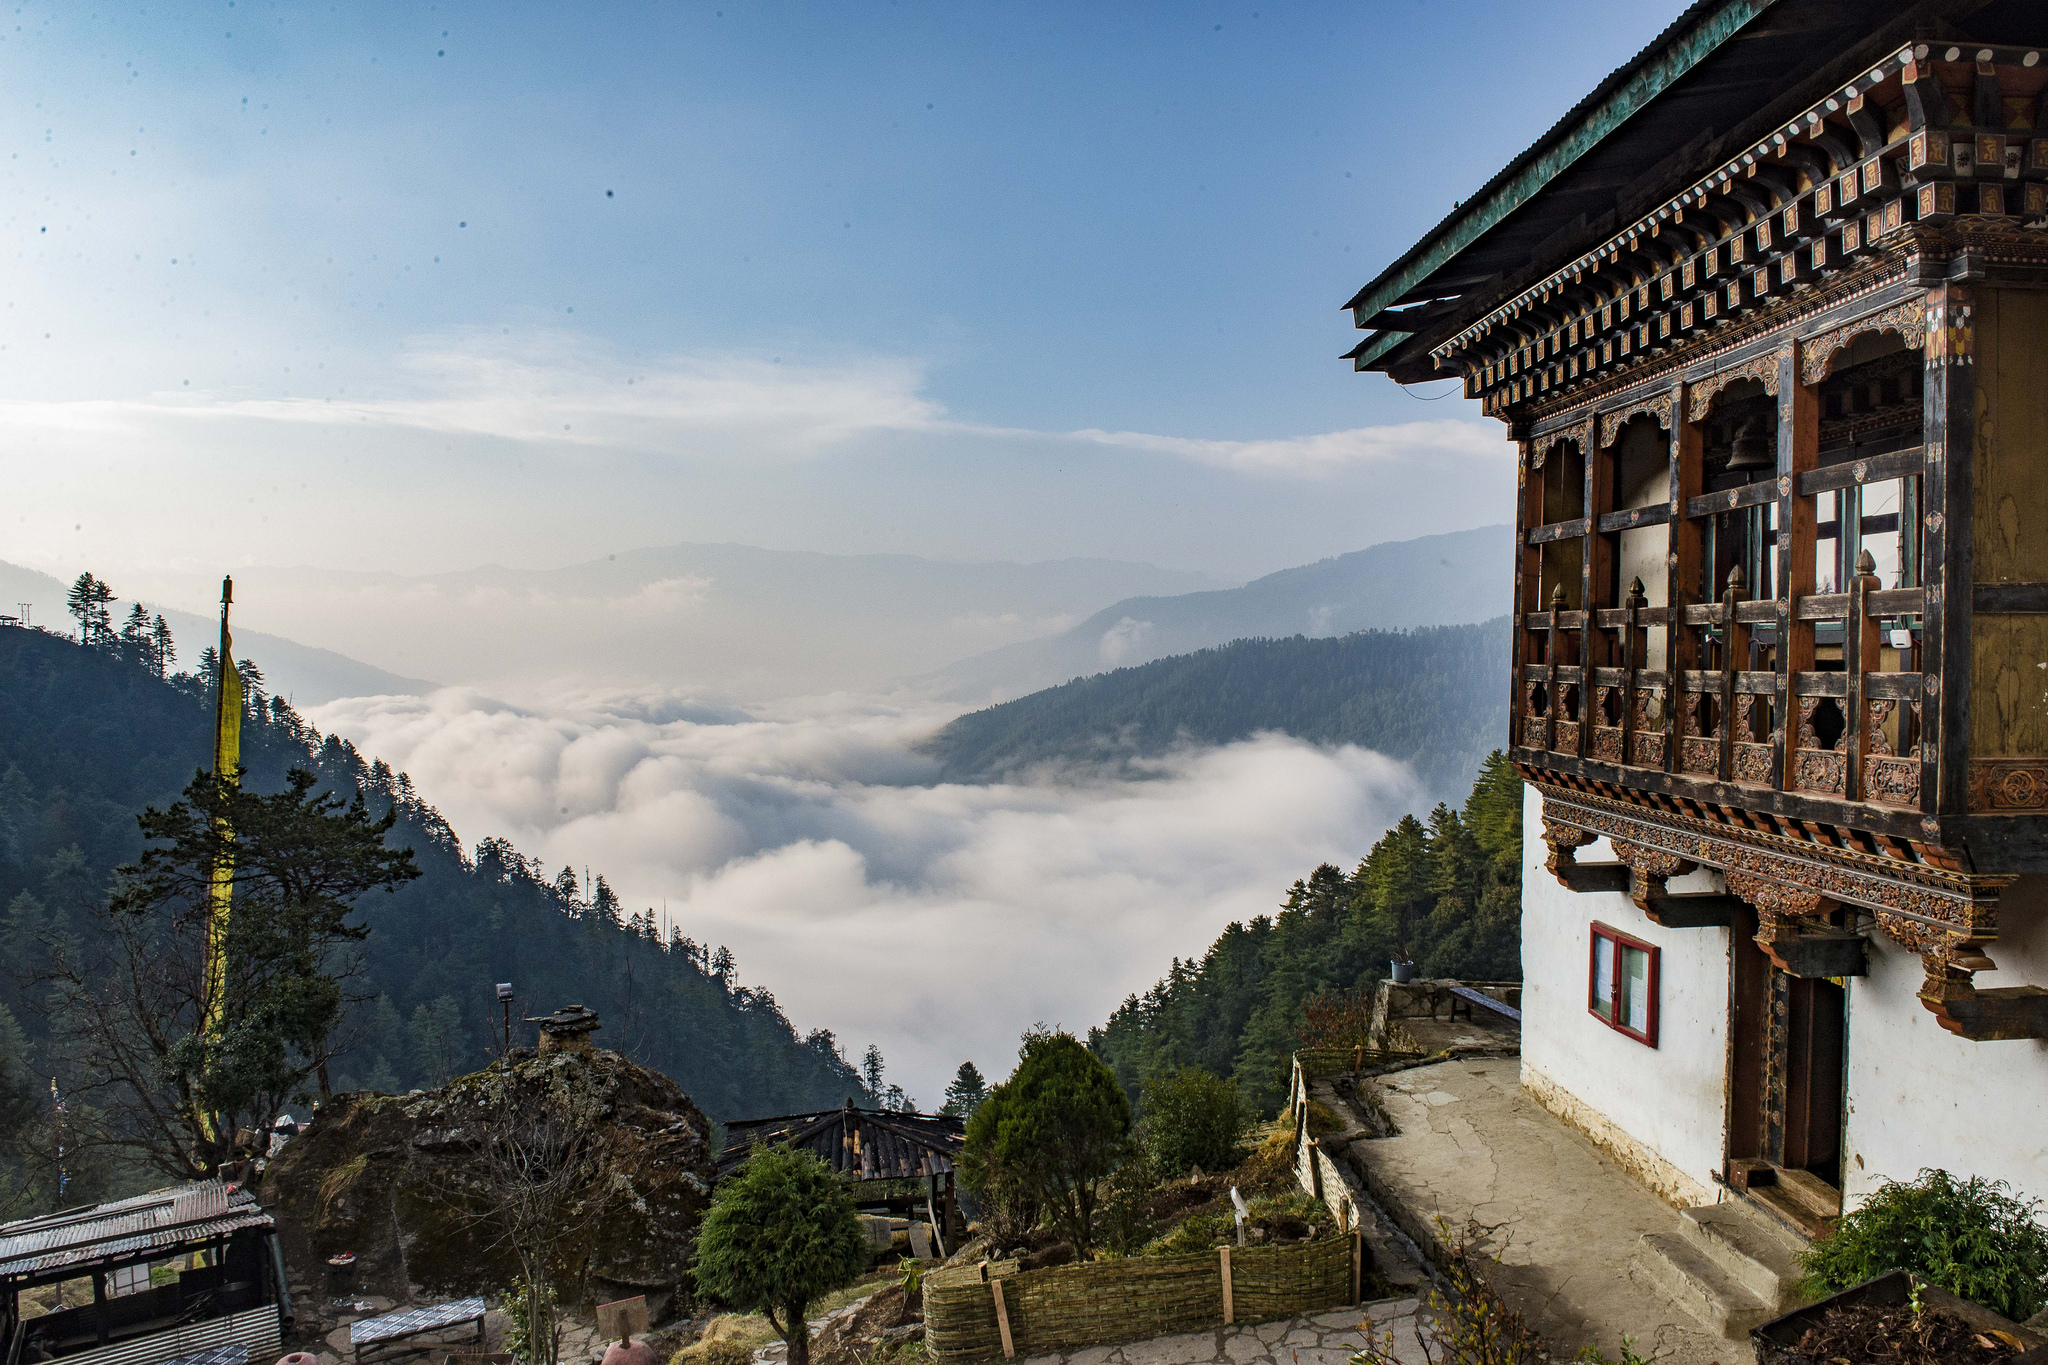 The view from the 12th century Dodedrak Monastery. The tour includes an overnight stay here with the monks who we can observe performing morning and evening chanting.